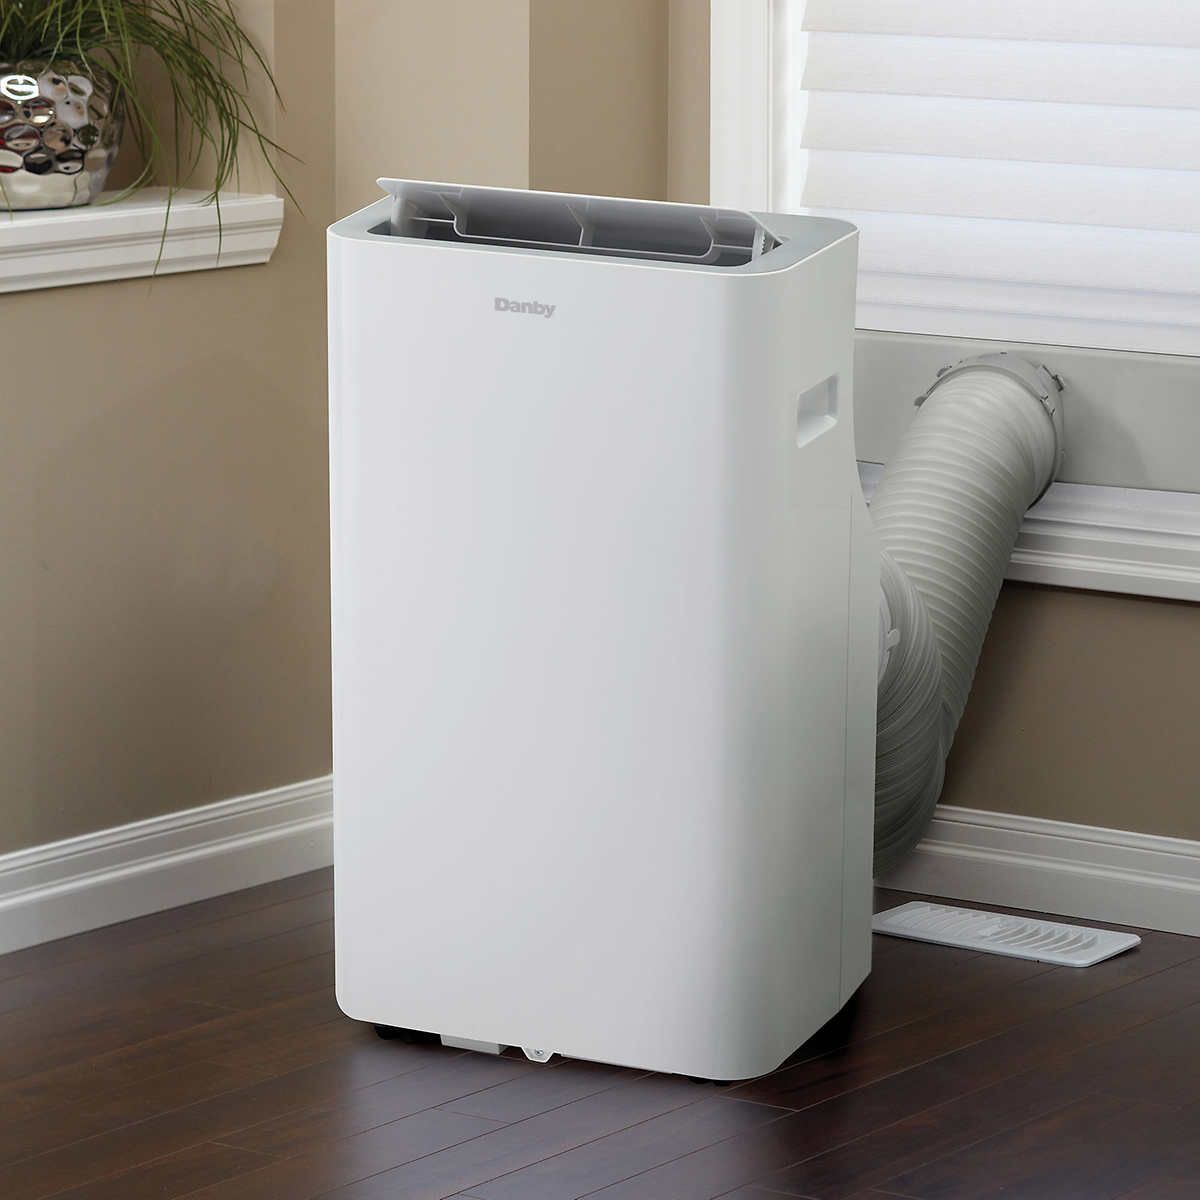 Danby 12 000 Btu Portable Air Conditioner Costco 329 00